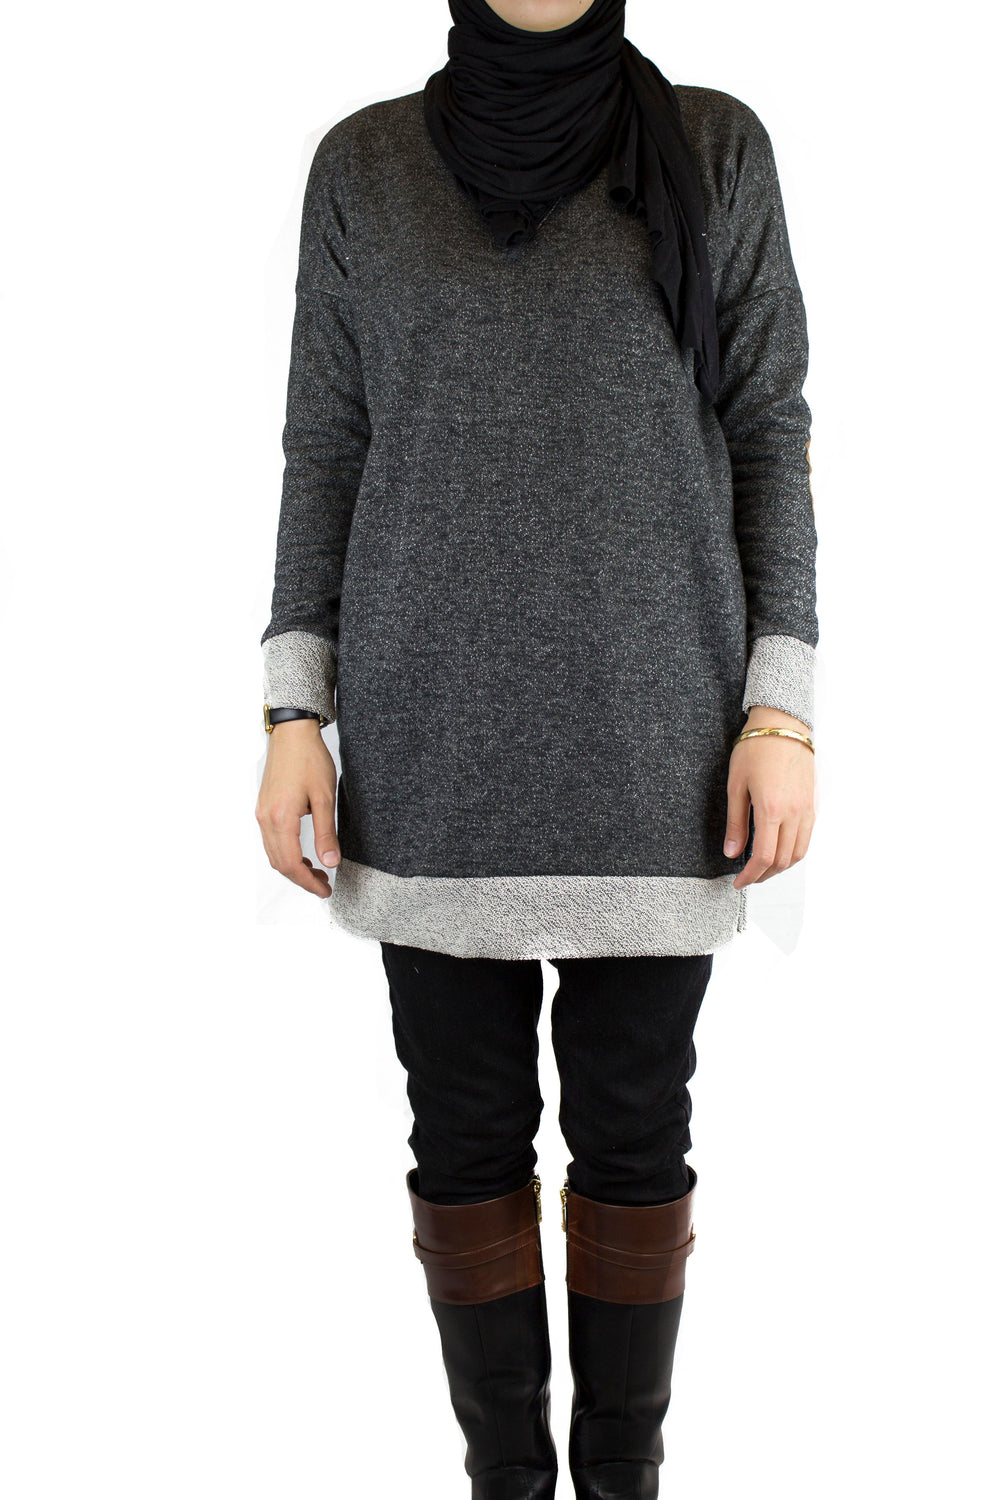 Elbow Patch Sweater - Black